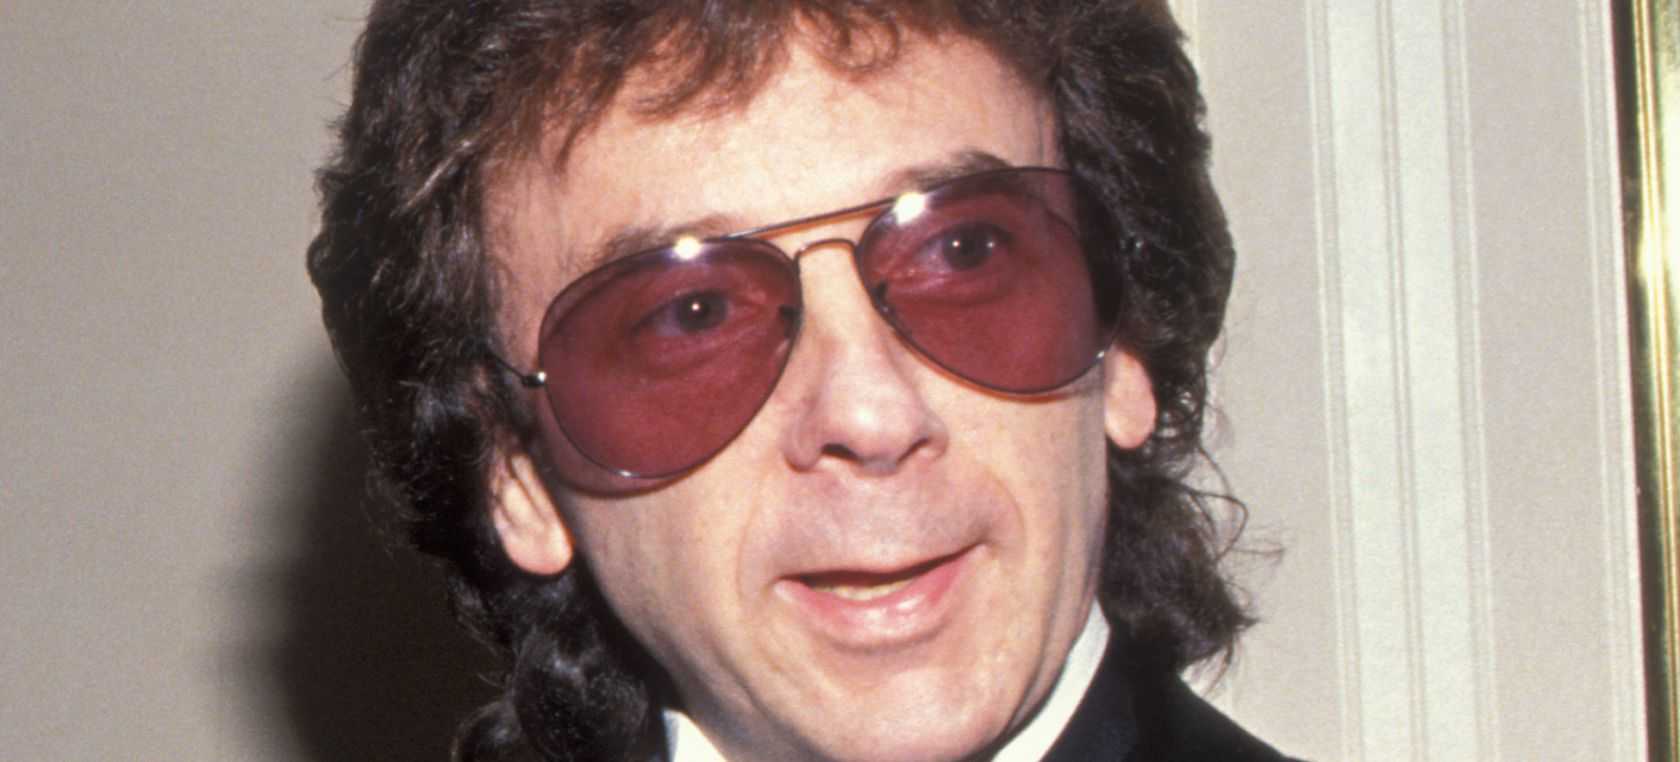 Phil lSpector